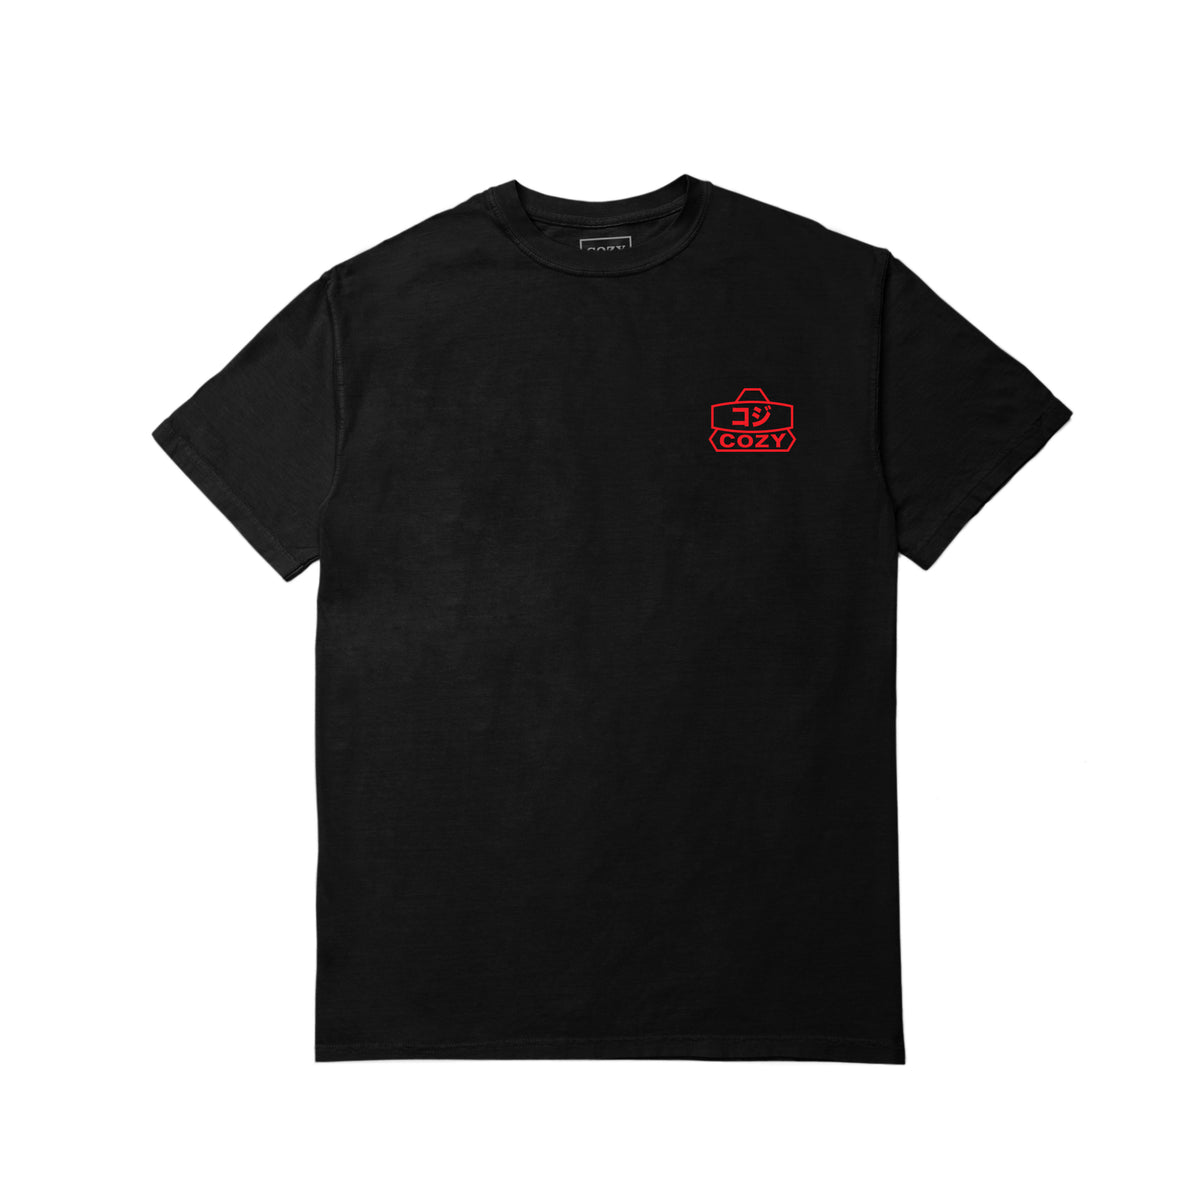 Ikon SS - Black/Red